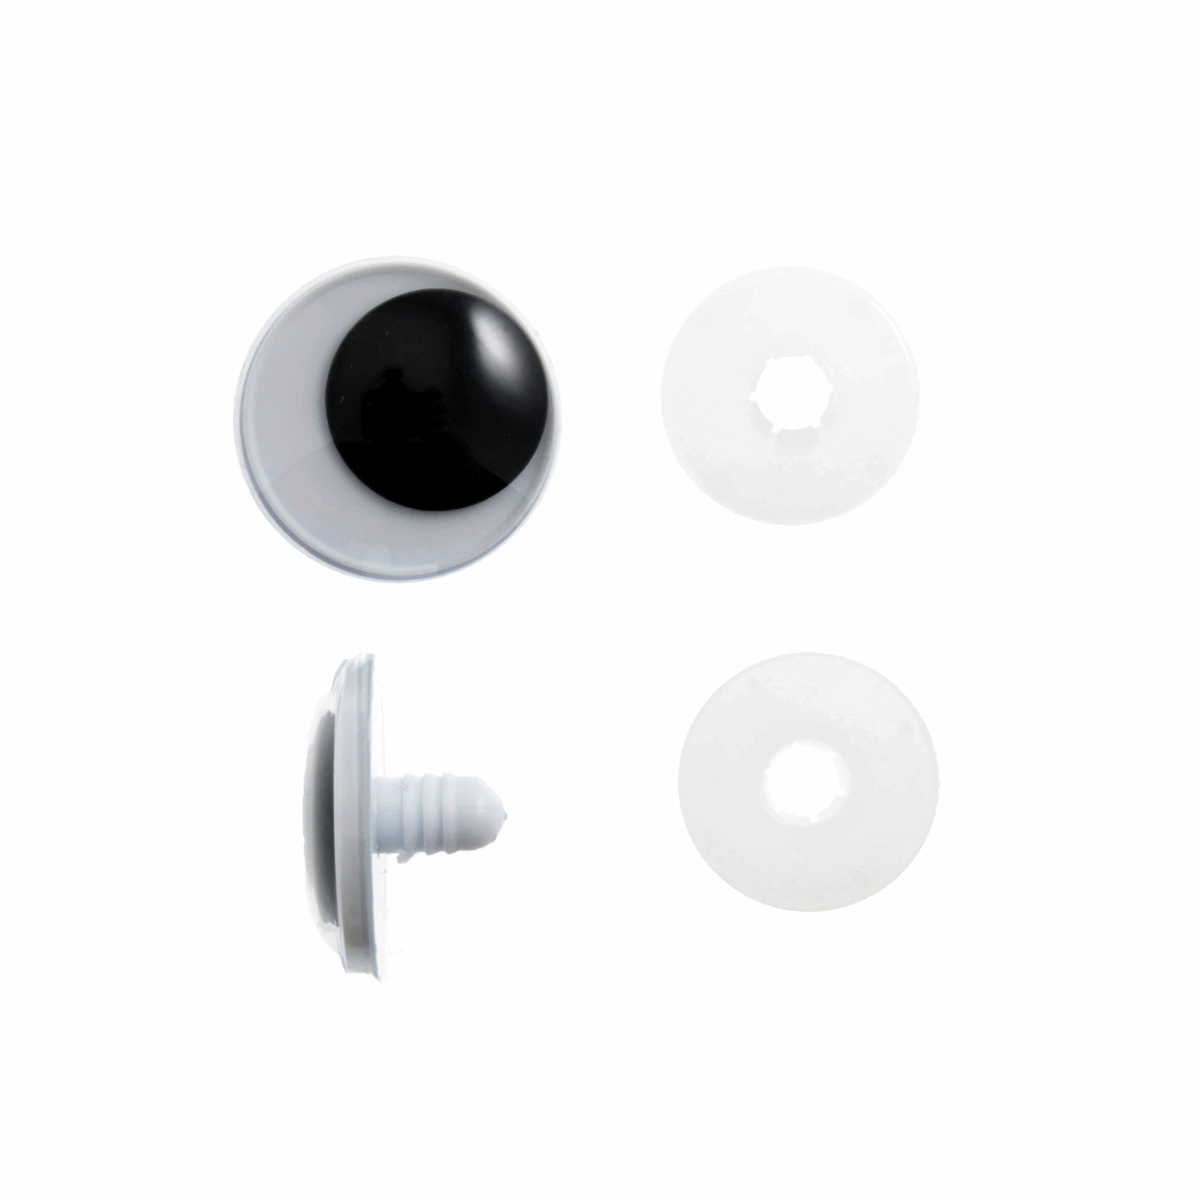 Toy Eyes: Safety Googly: 25mm: Black: 2 Pack